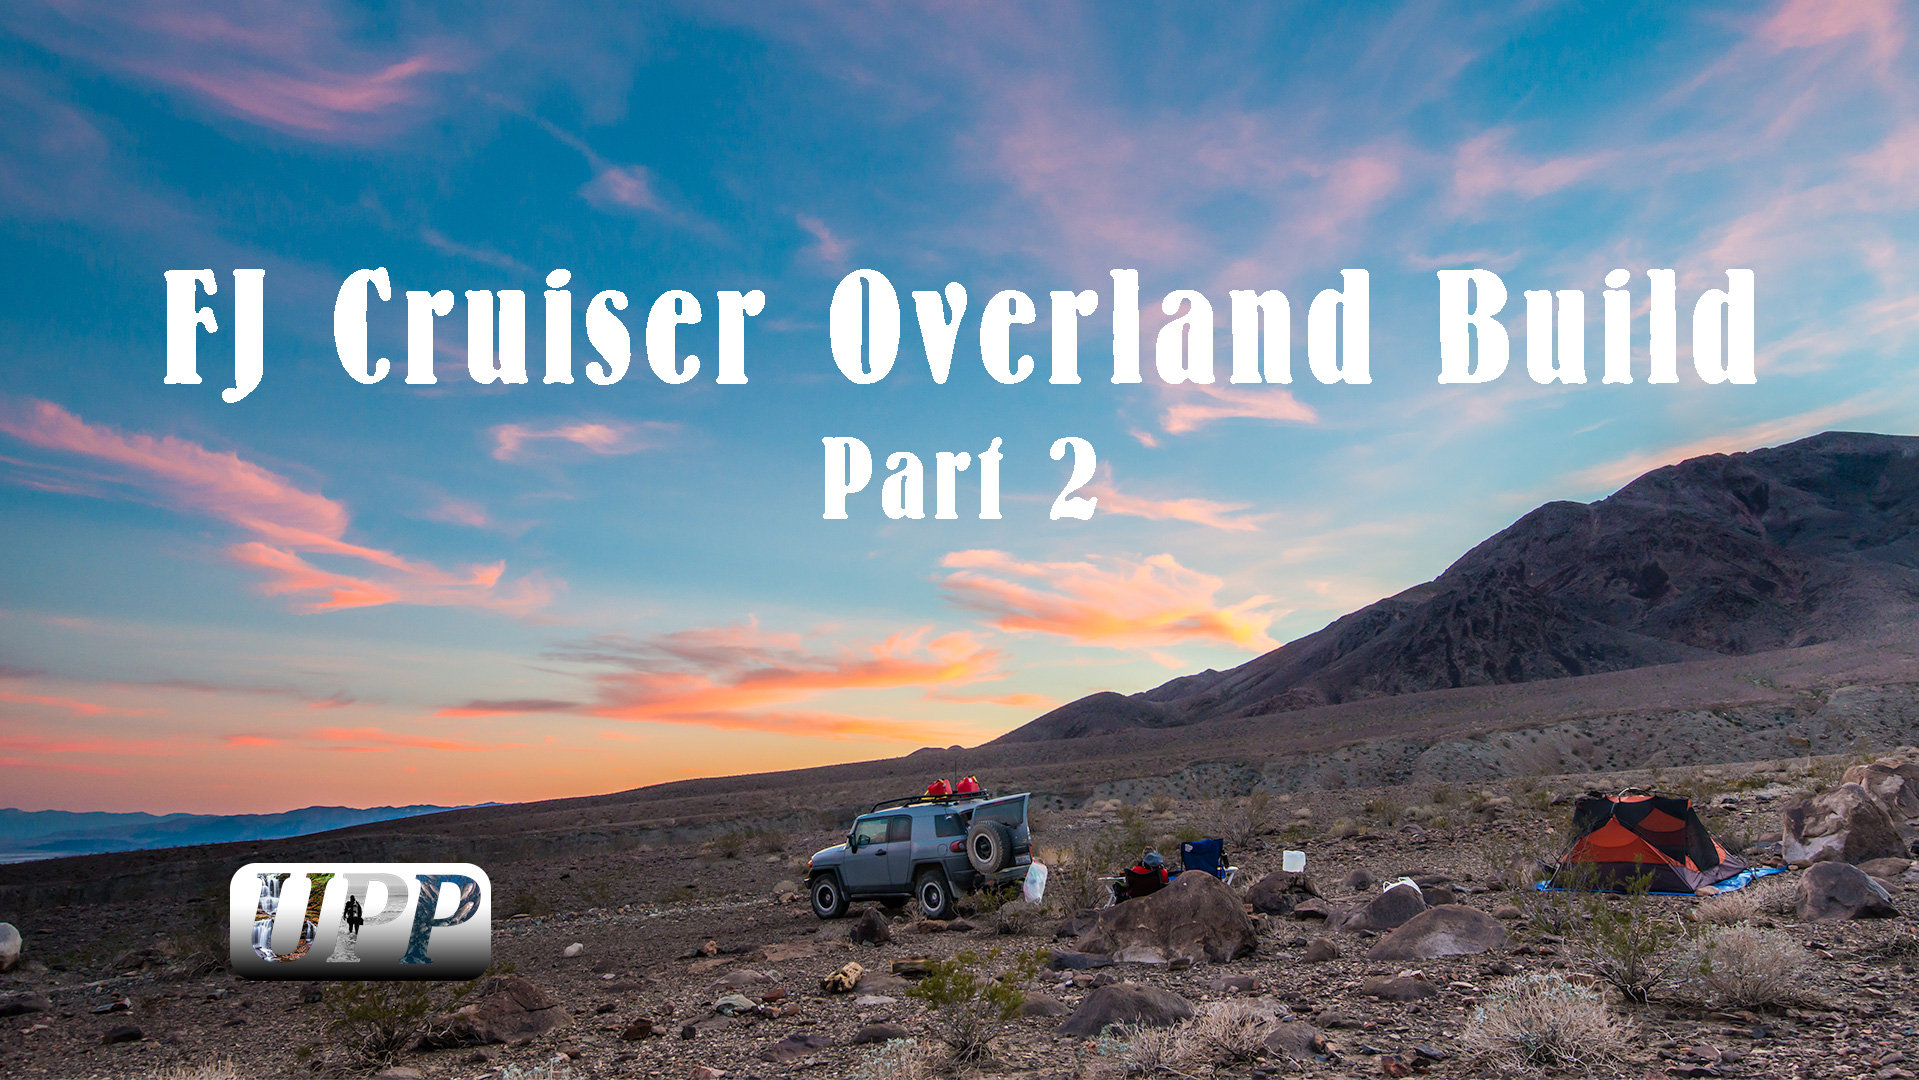 FJ Cruiser Overland Build Part 2